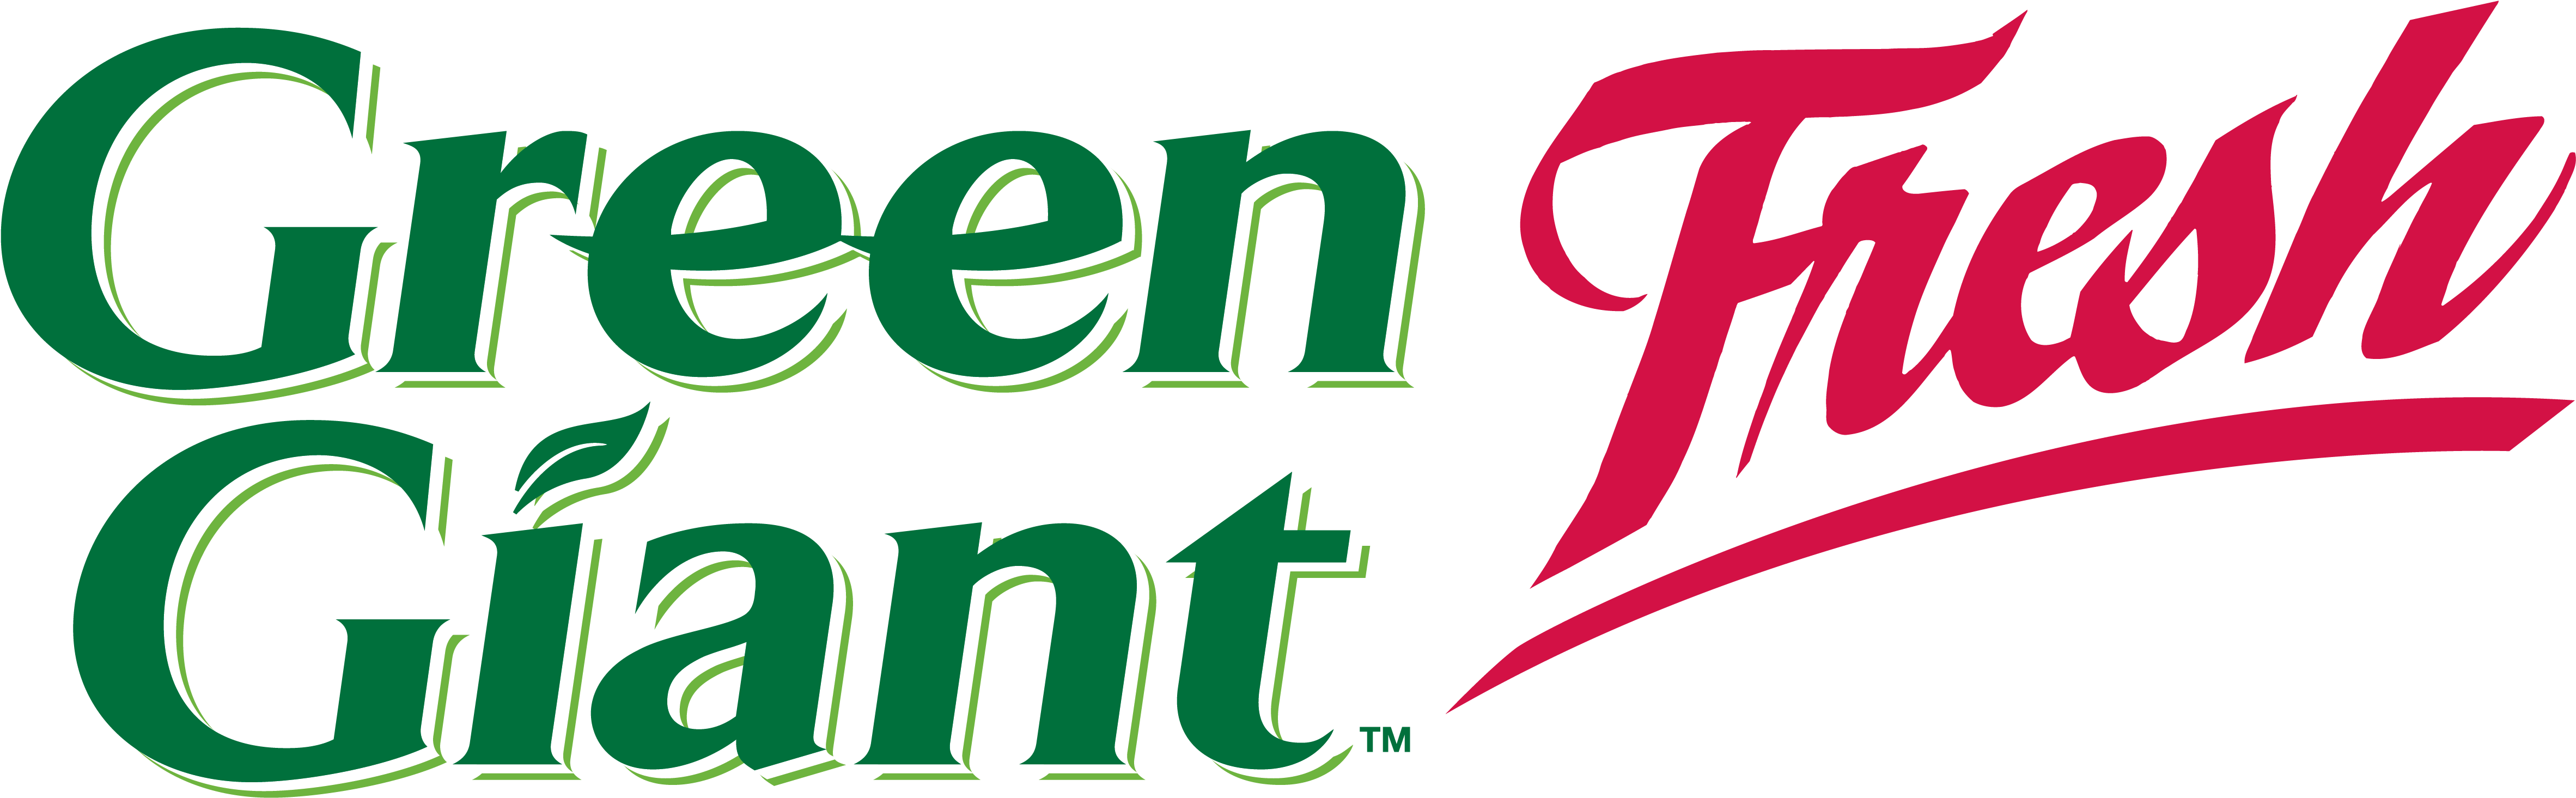 Green Giant Png Transparent Background.